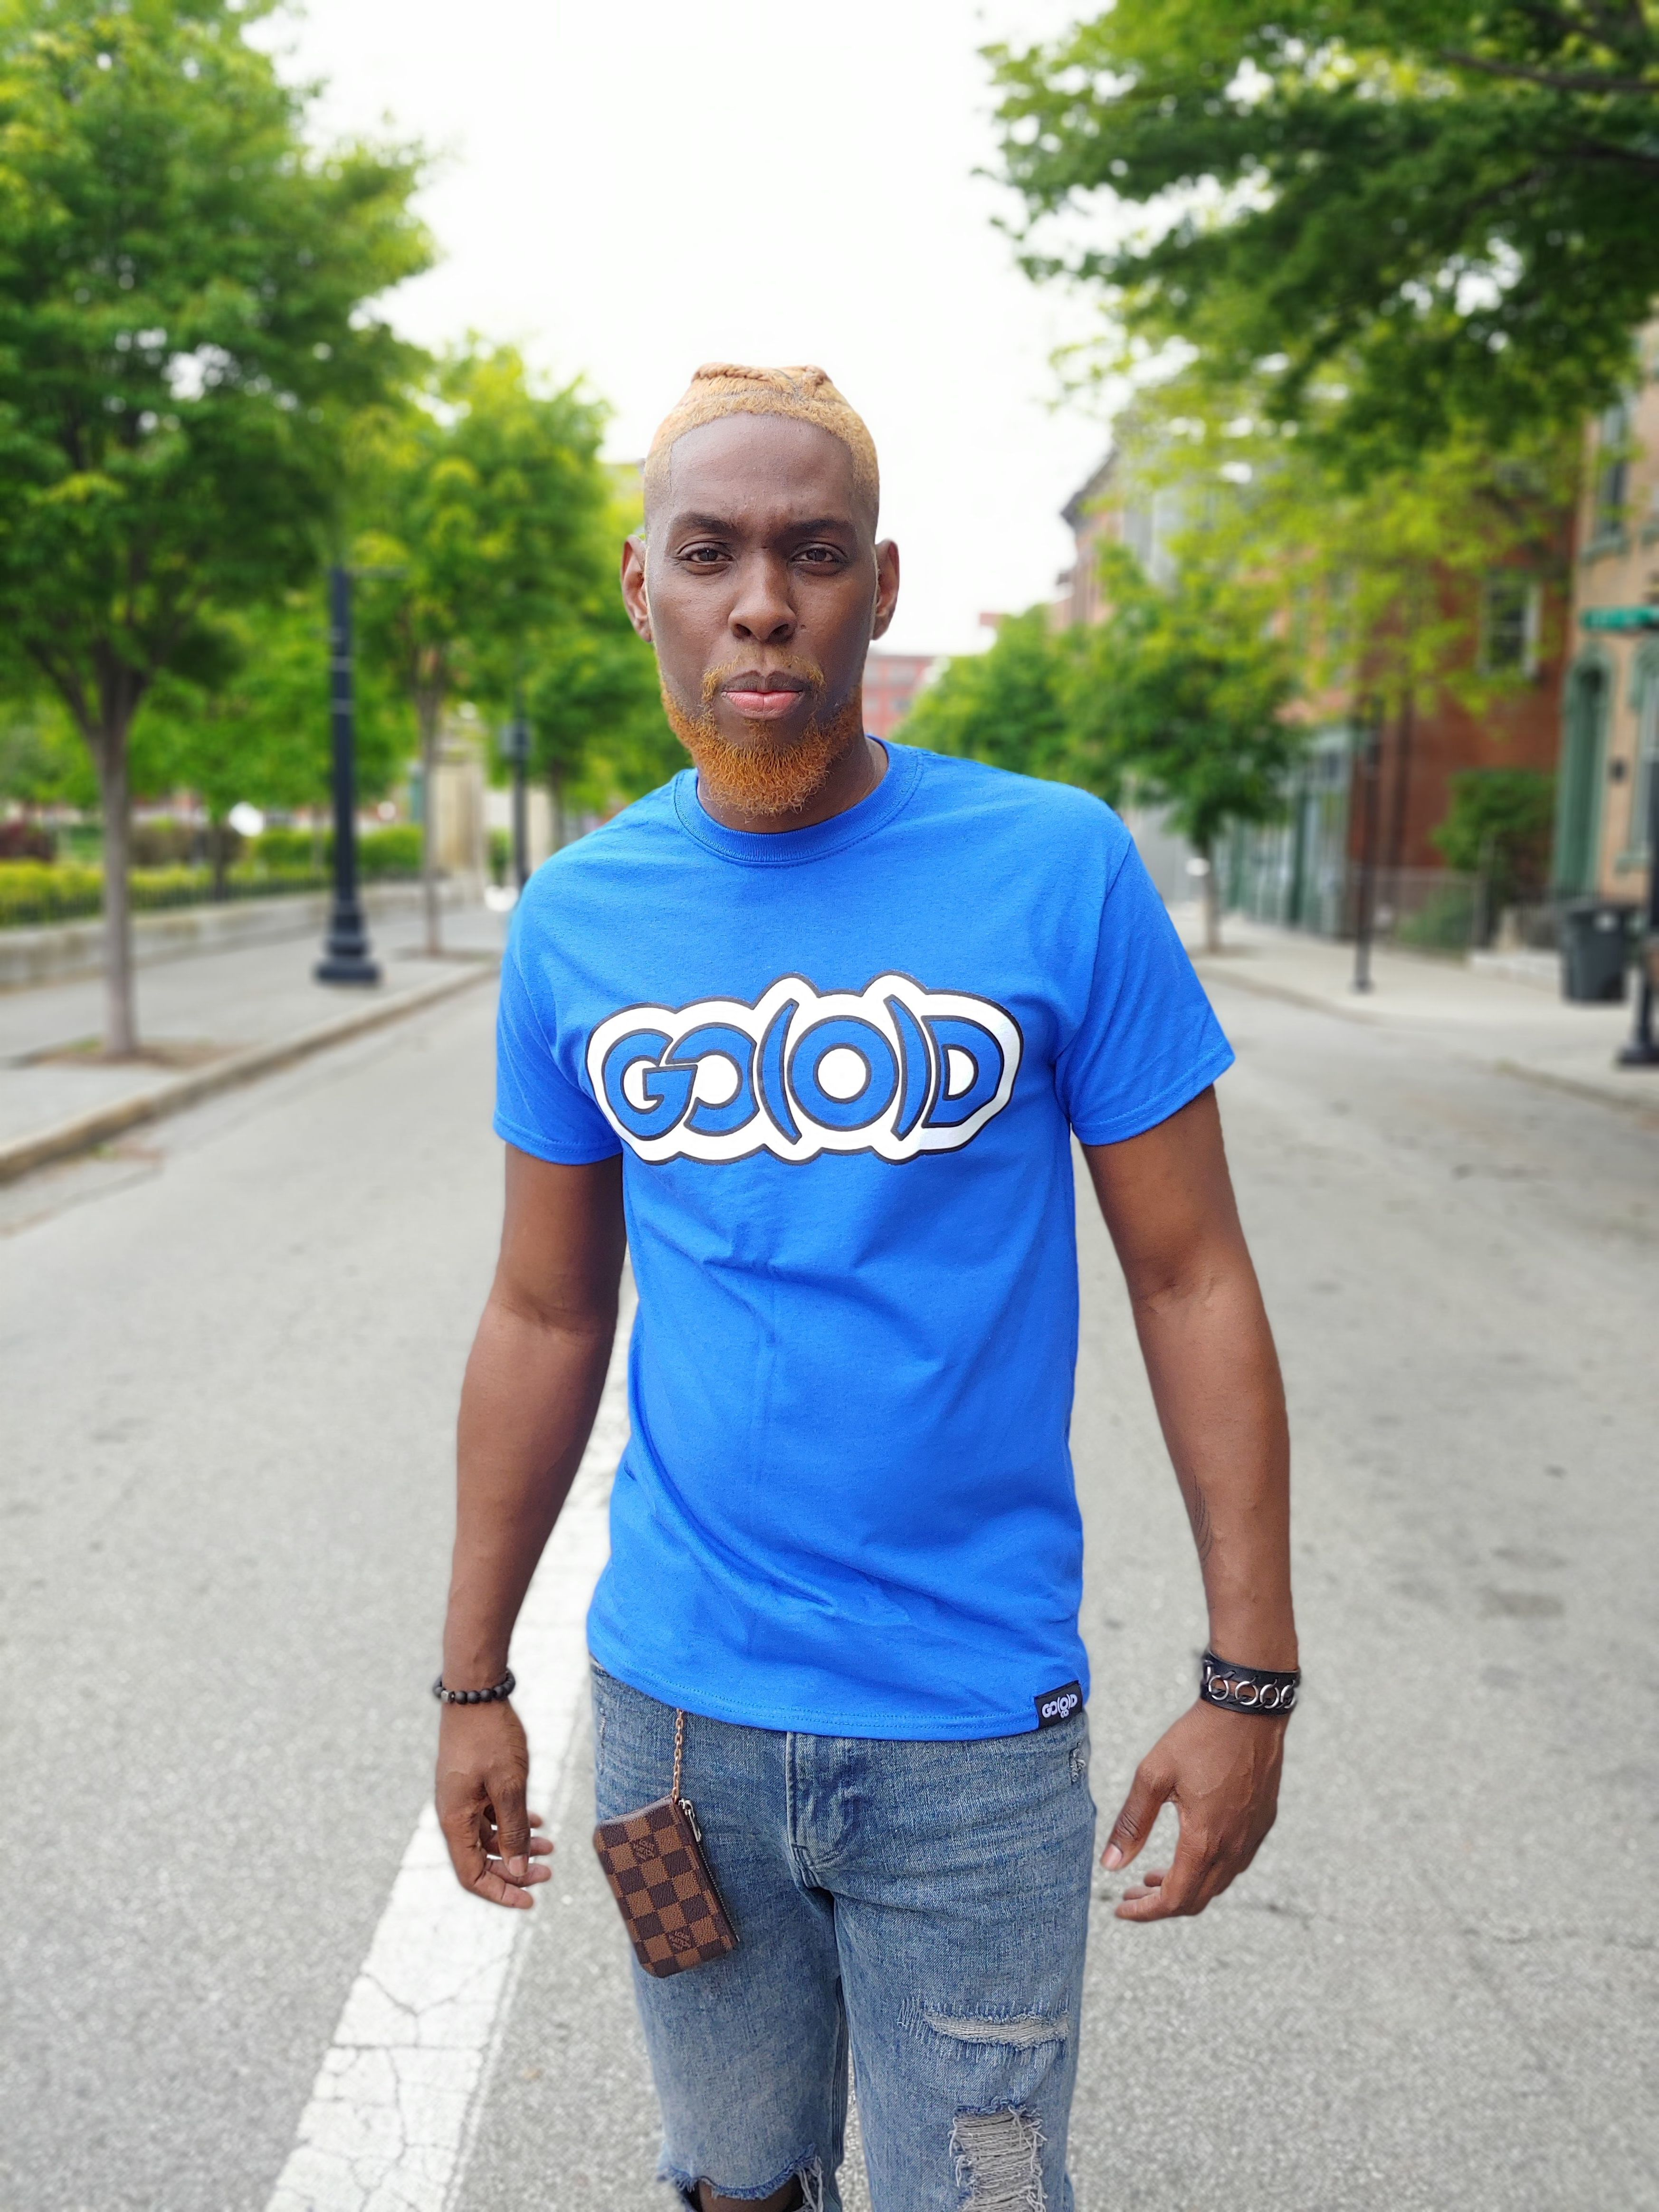 GO(O)D Classic Outline tee-royal/white/black trim 00208